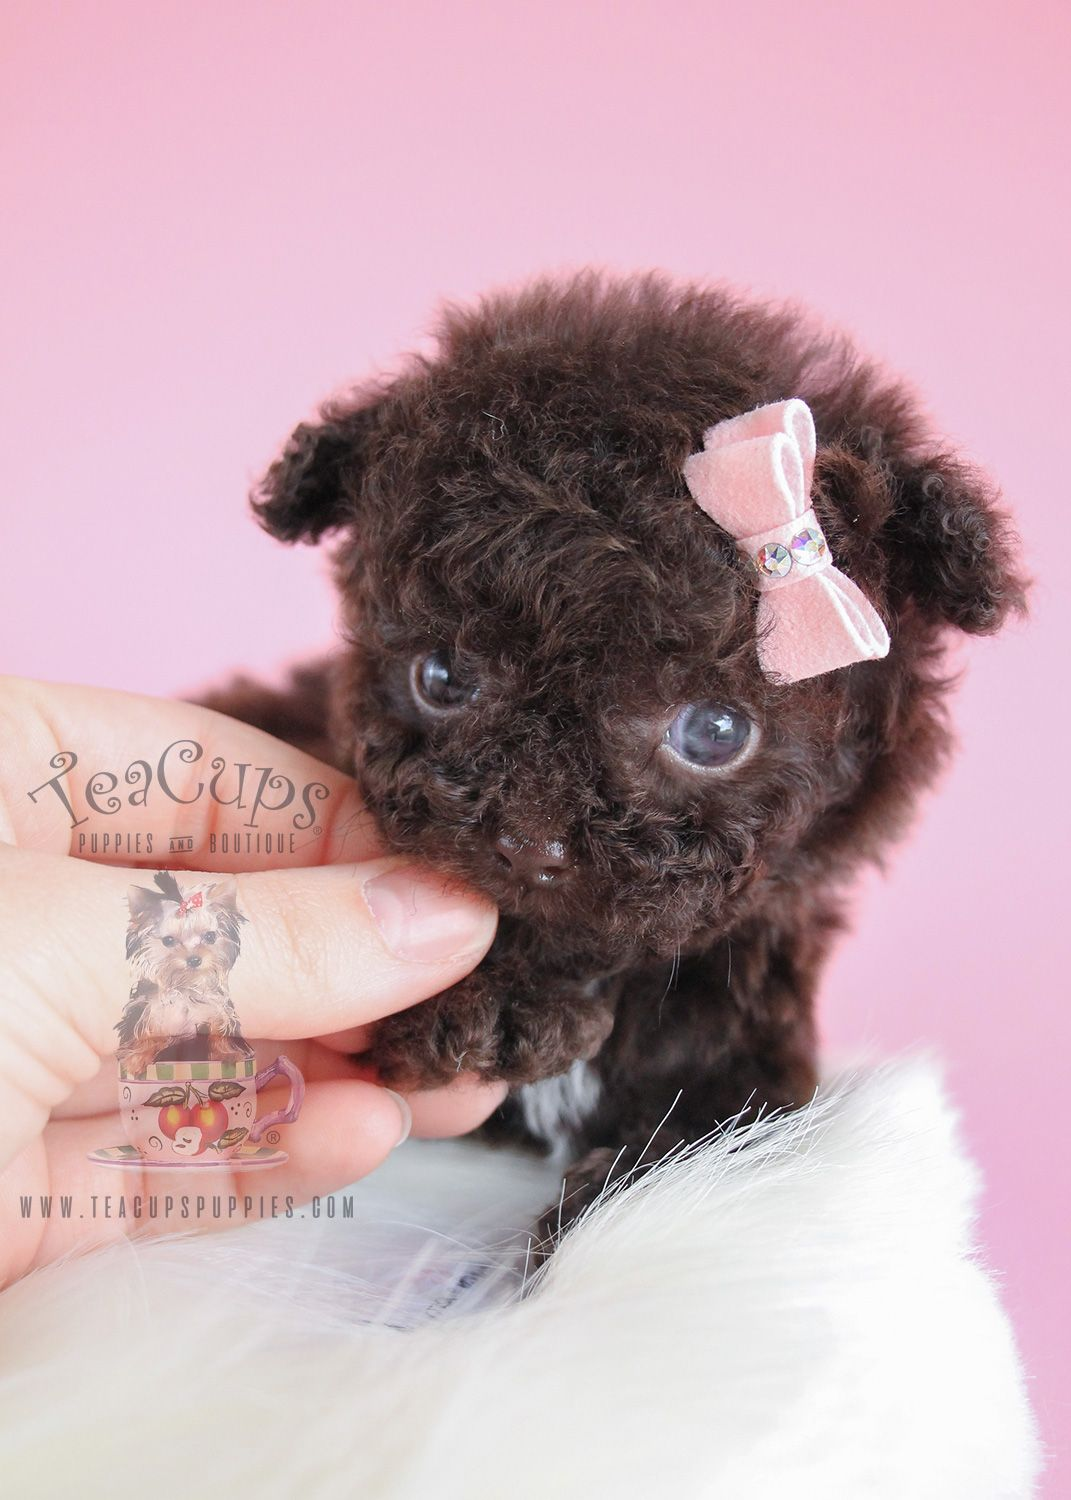 Micro Teacup Poodle 107 Puppy For Sale Poodle puppies